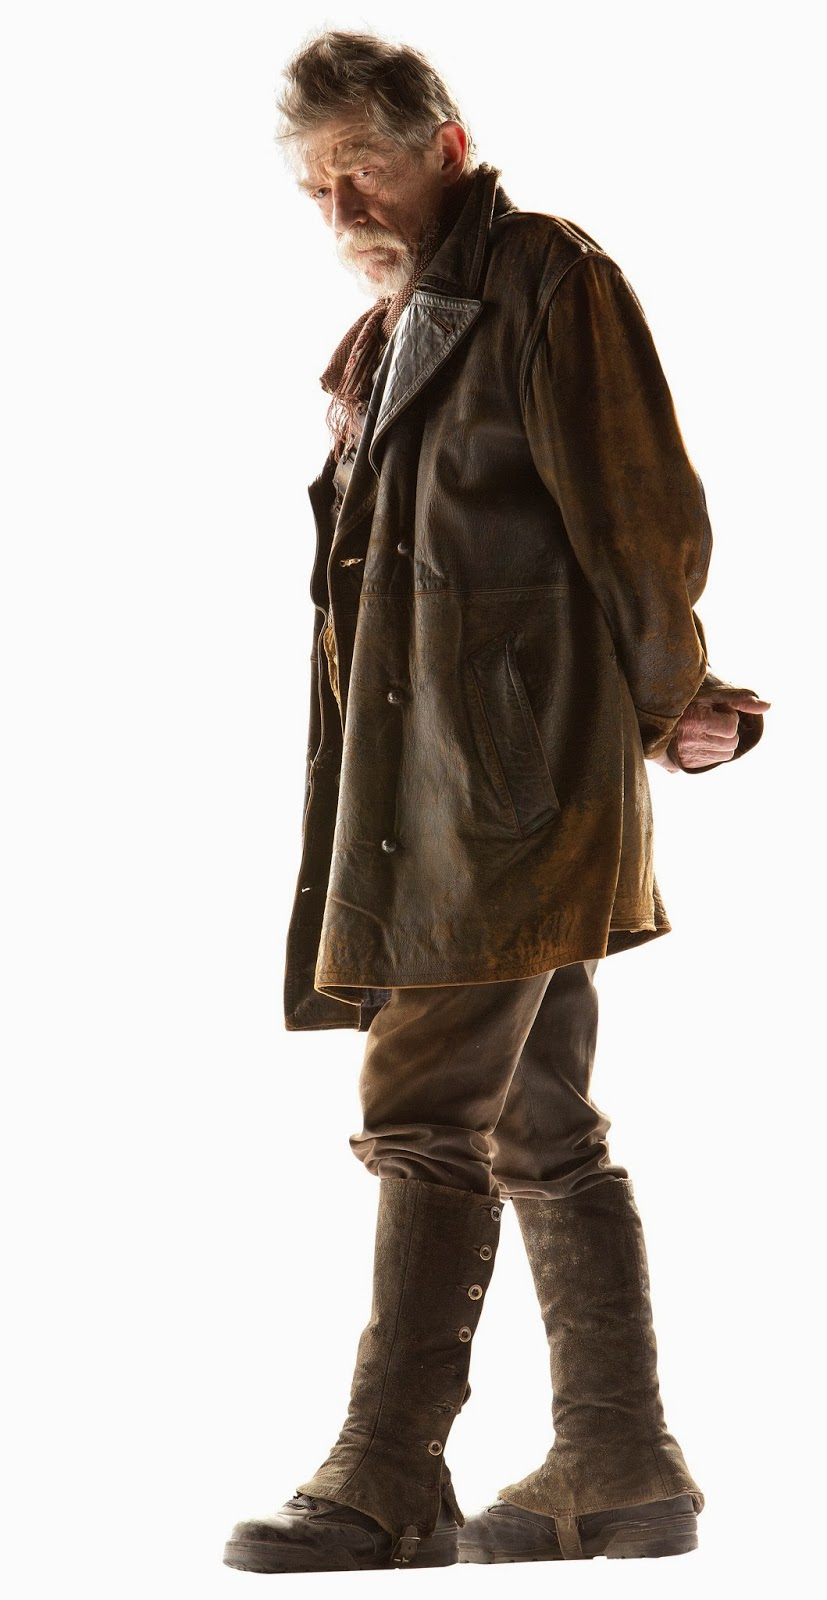 Another publicity shot of John Hurt as the War Doctor